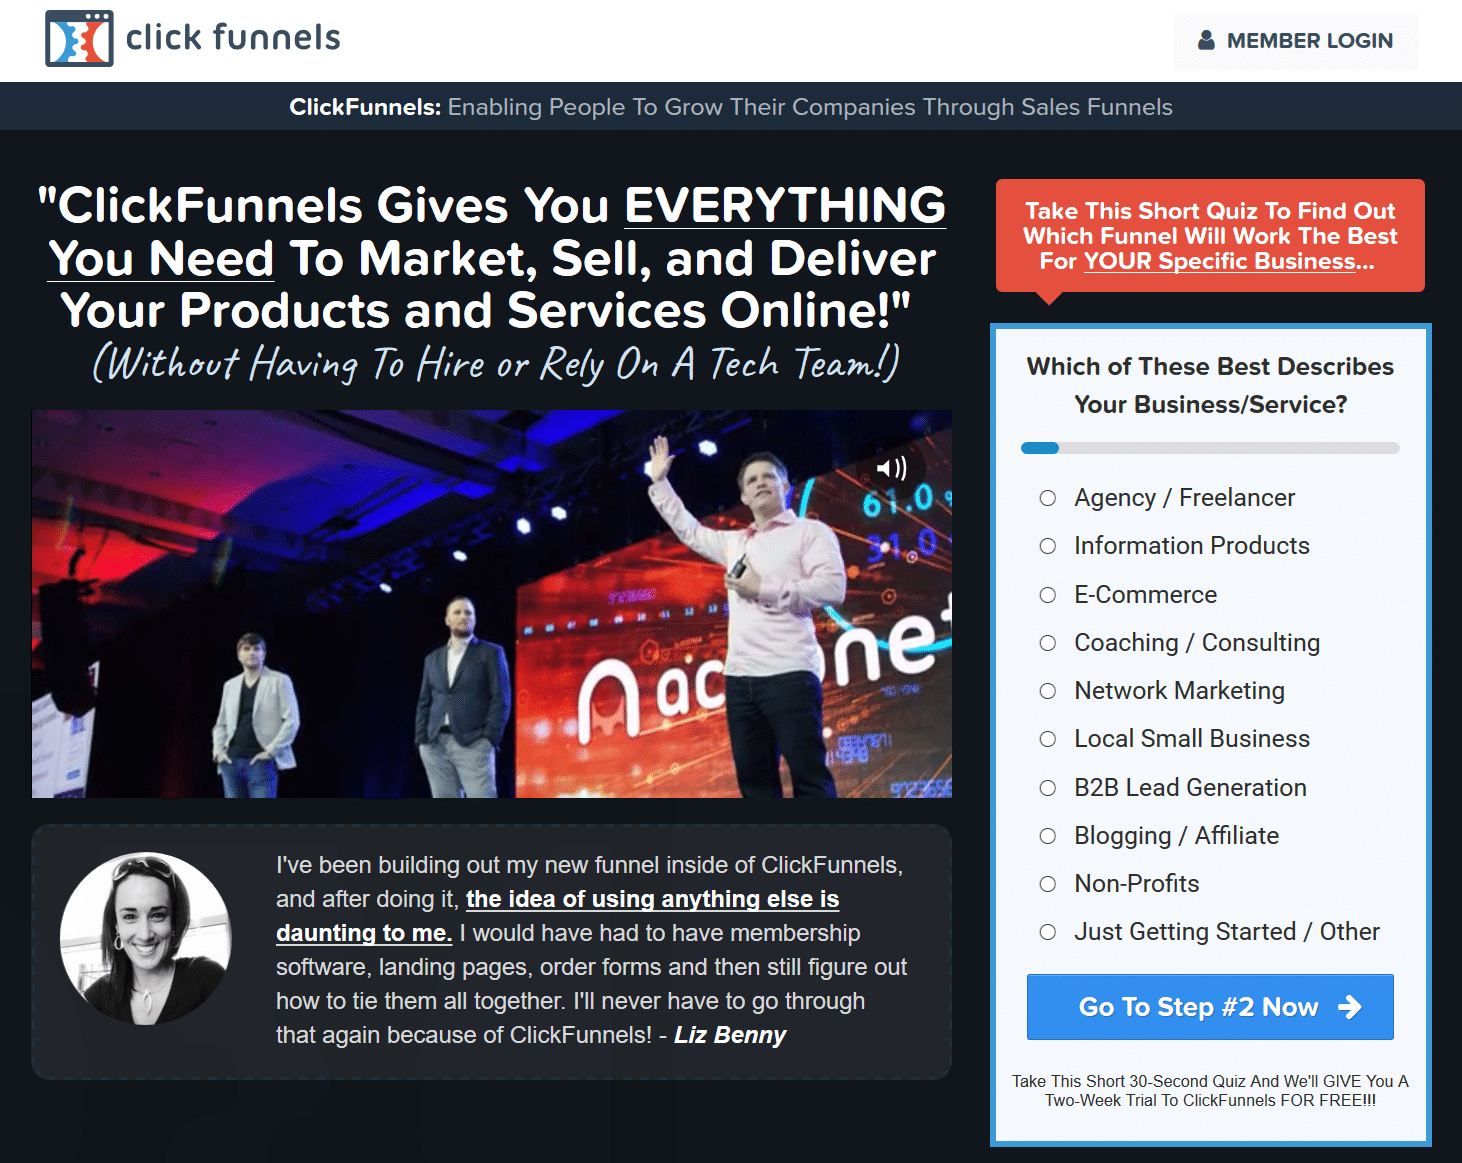 What Email Is Integrated With Clickfunnels